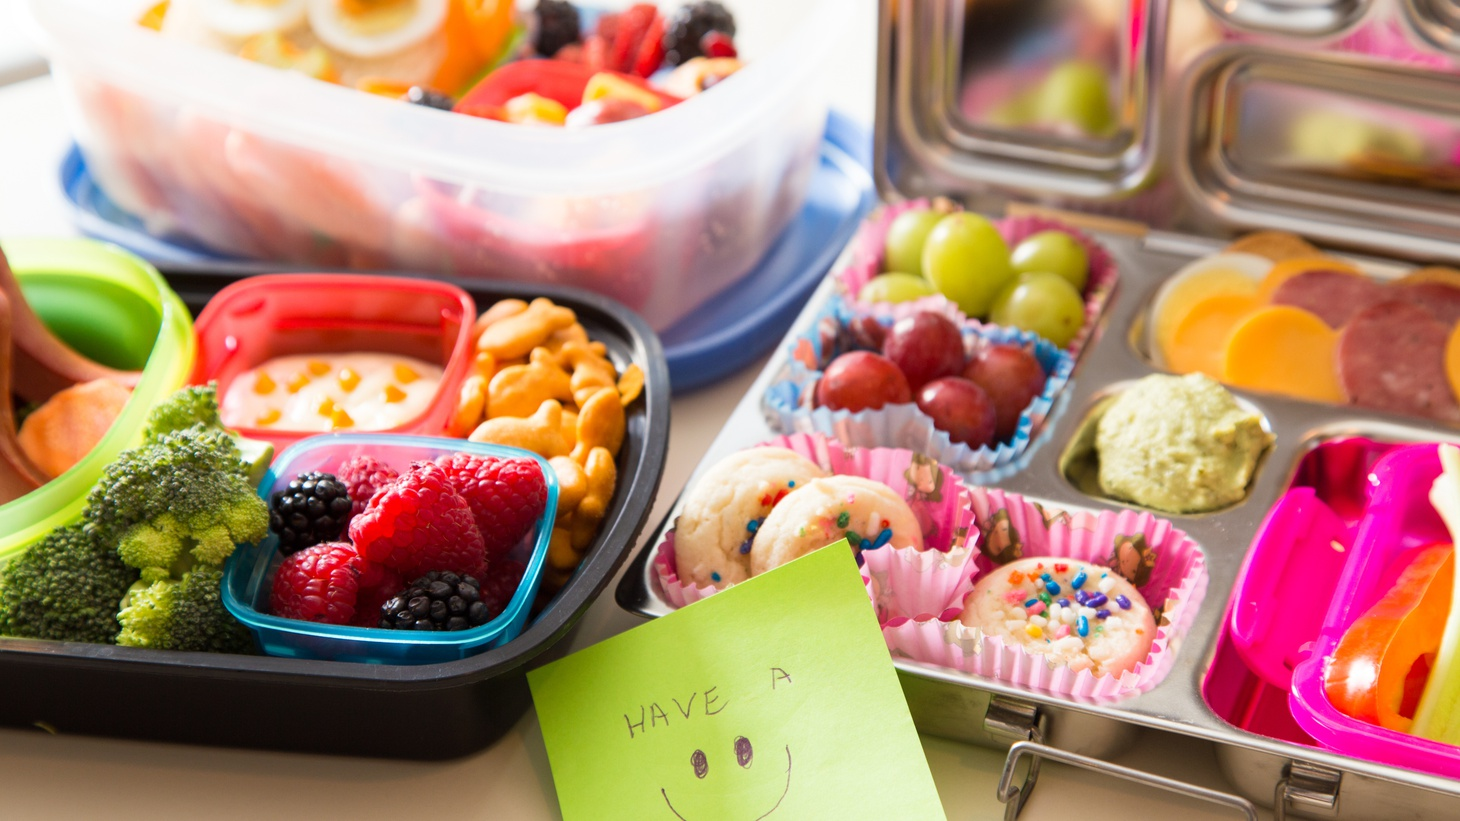 Opt for compartmentalized lunch carriers and include favorites when making kids' school lunches, recommends Evan Kleiman.